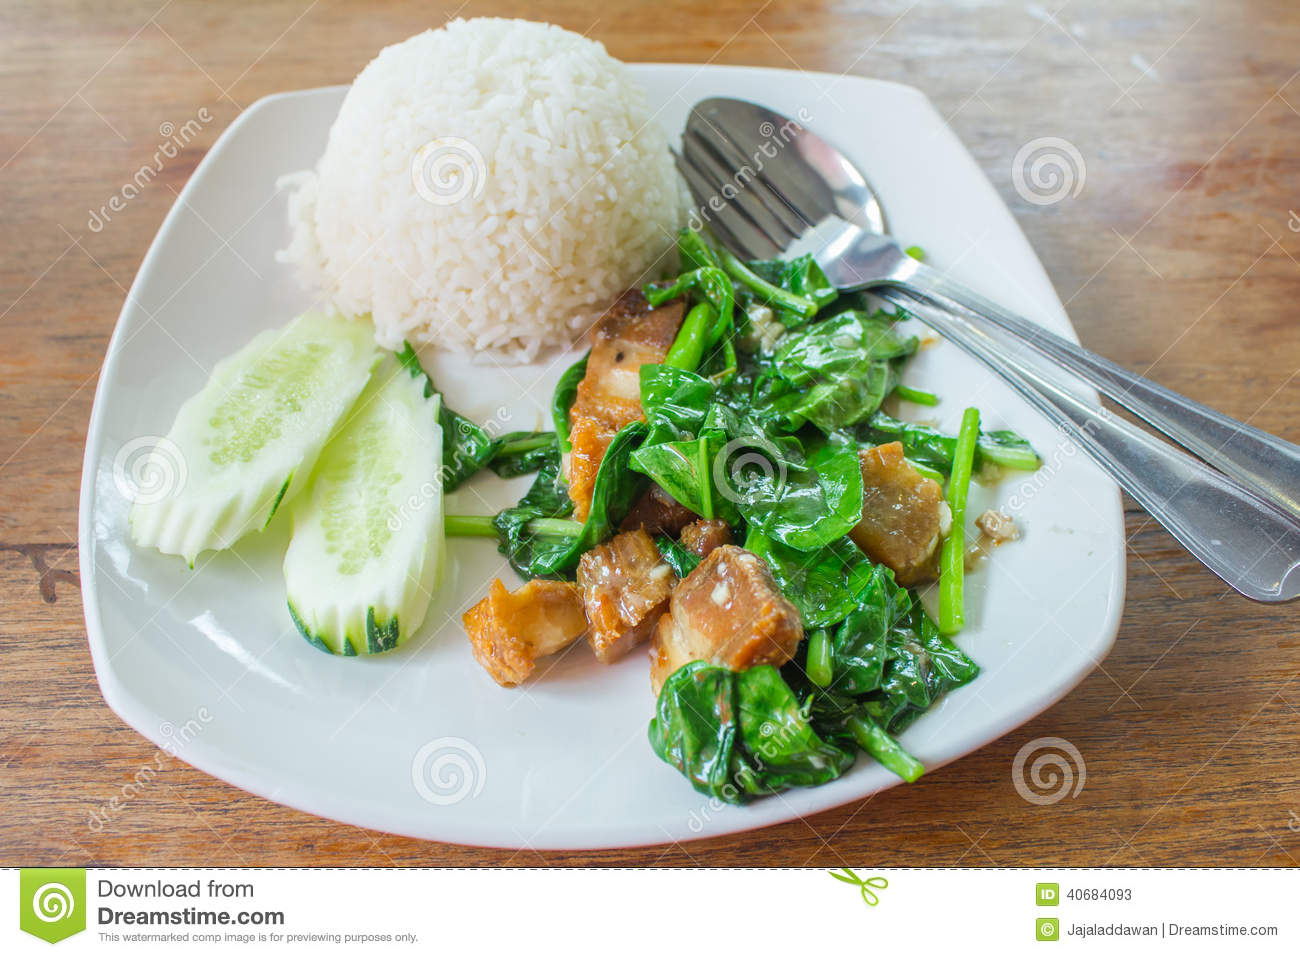 Kale Fried With Crispy Pork Steamed Rice Stock Photo - Image: 40684093